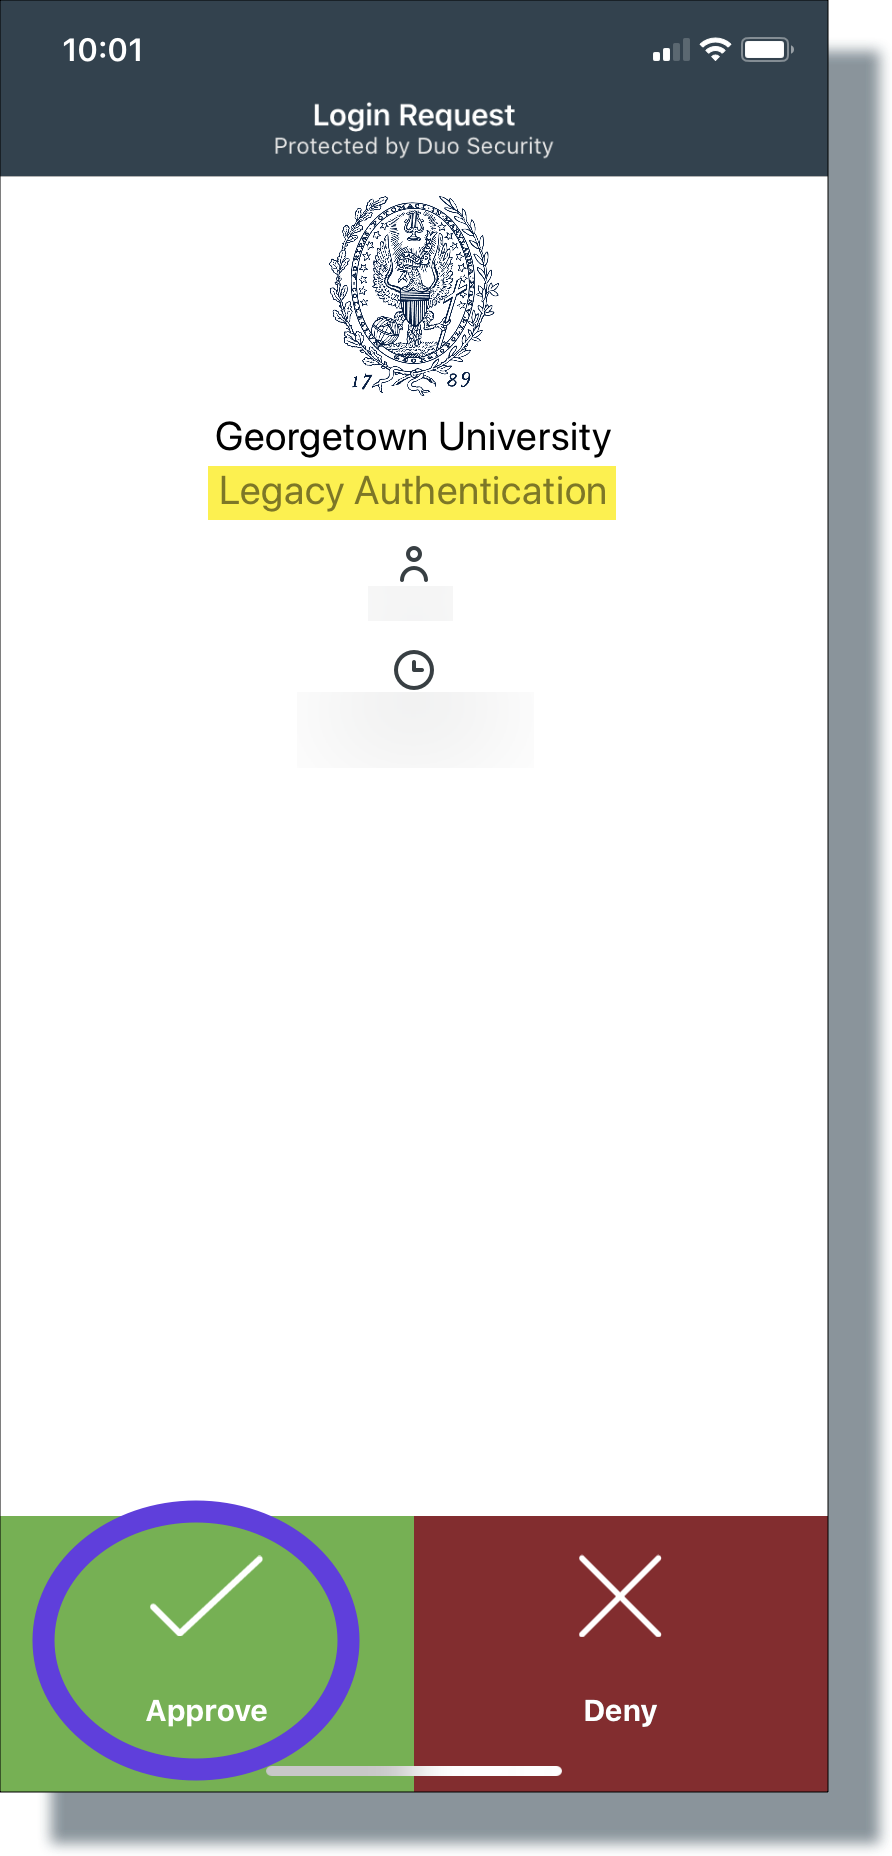 Tap 'Approve' on the Duo Mobile login request